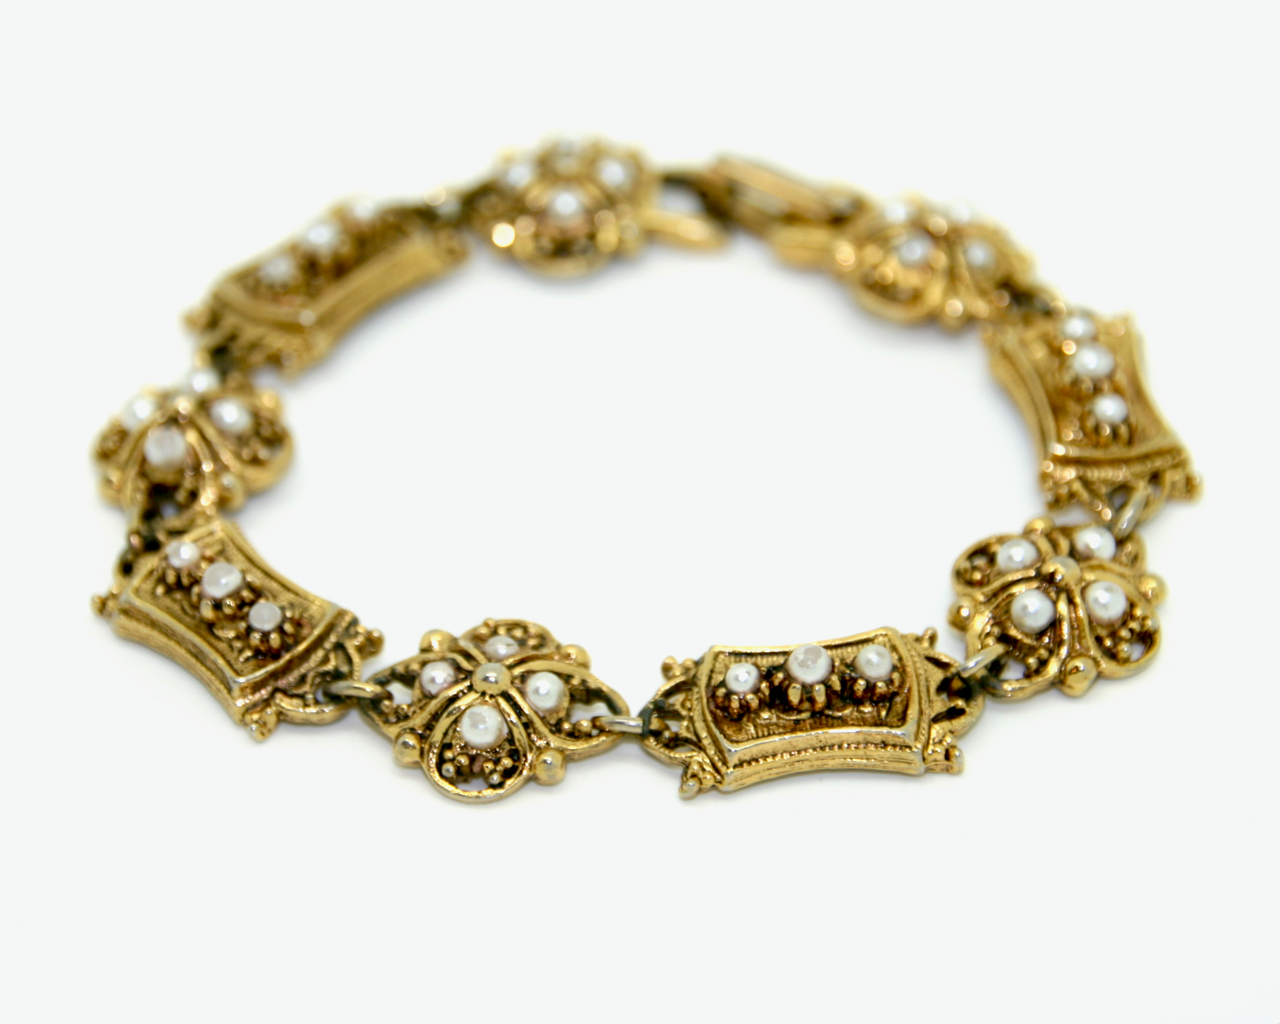 1950's ART victorian revival seed pearl and gold panel bracelet